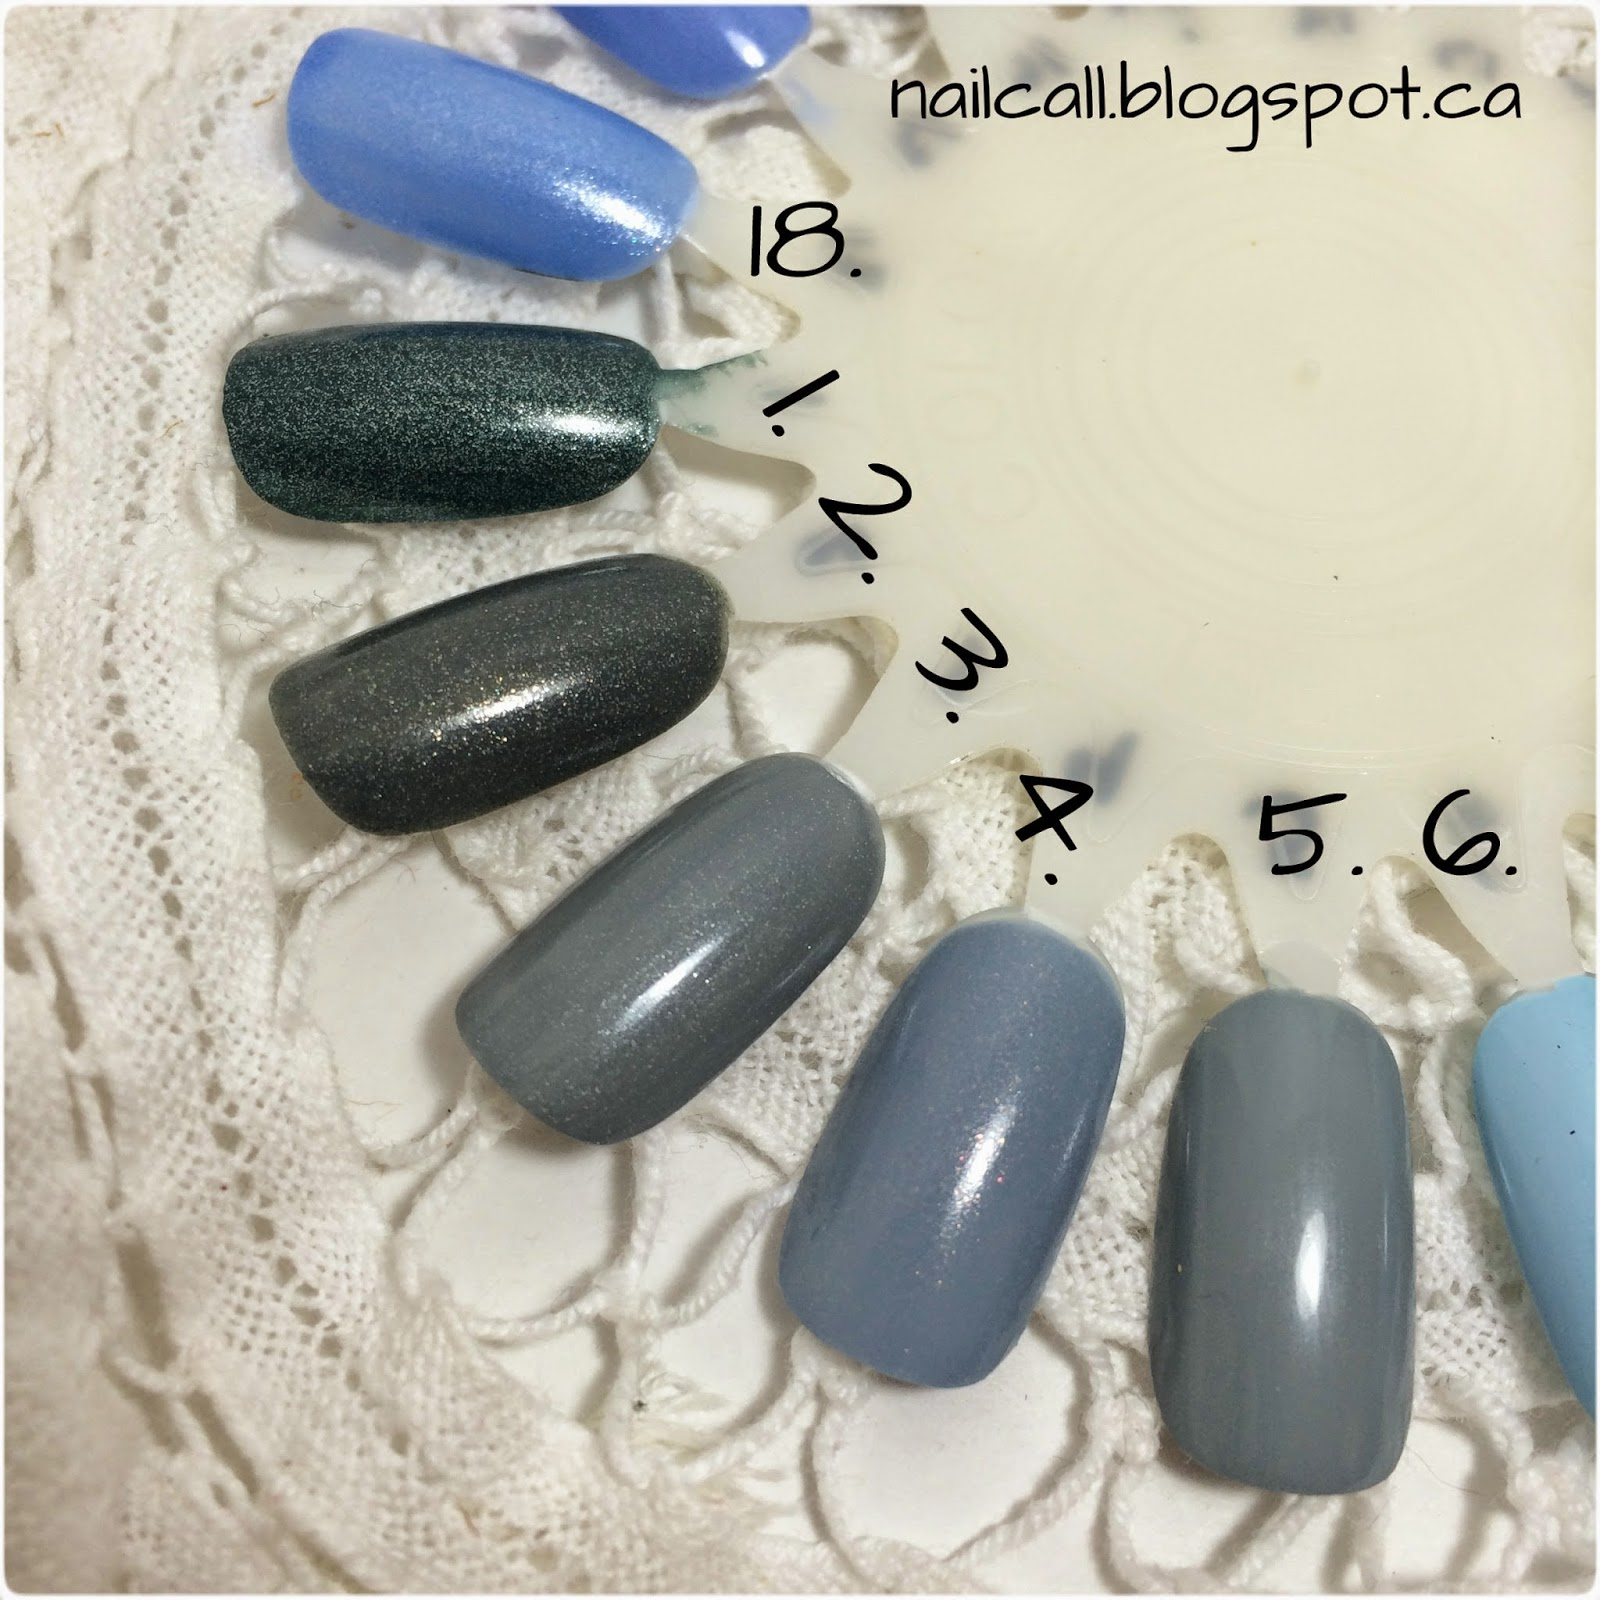 nail polish swatches 1-6 & 18